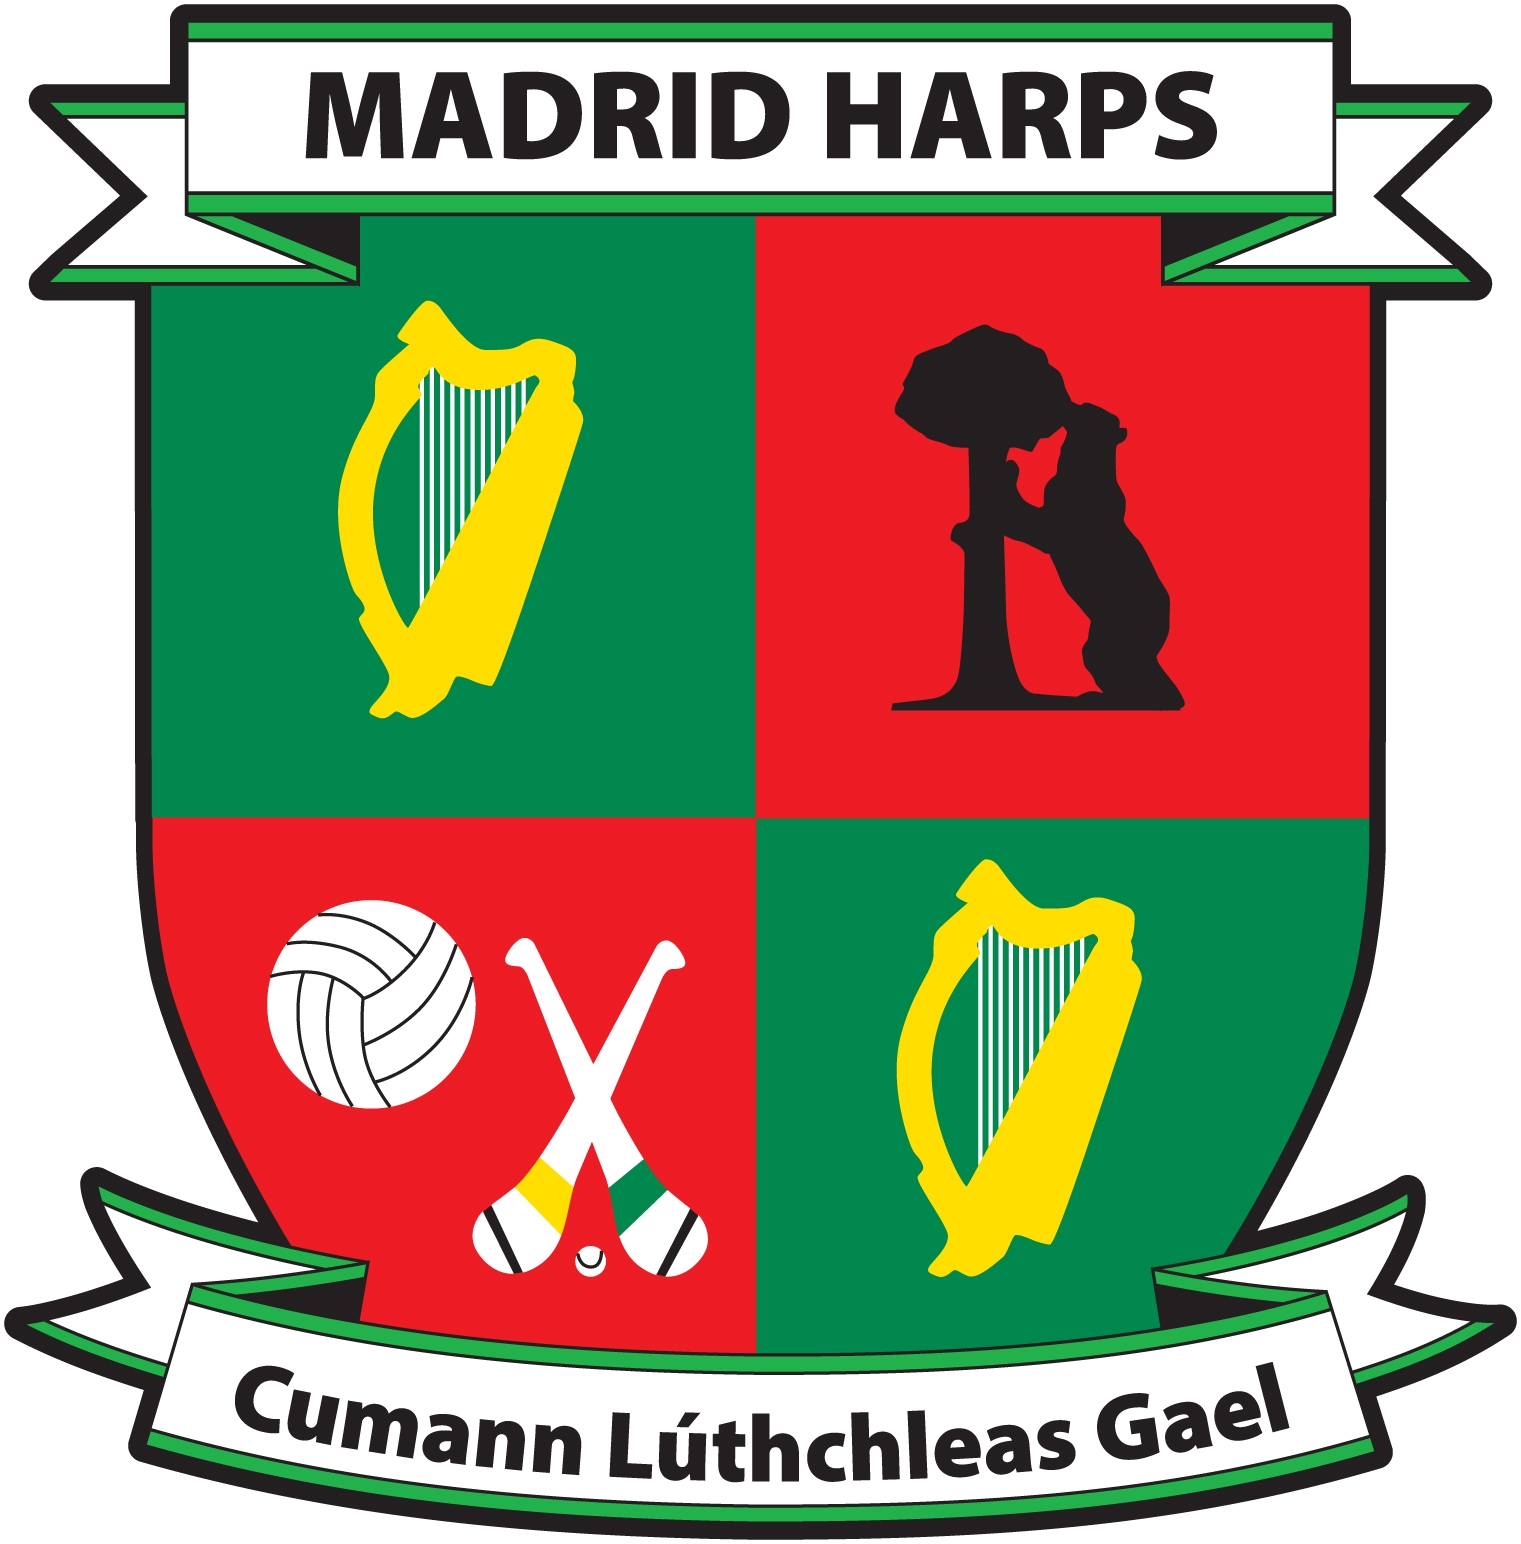 madrid-harps-logo